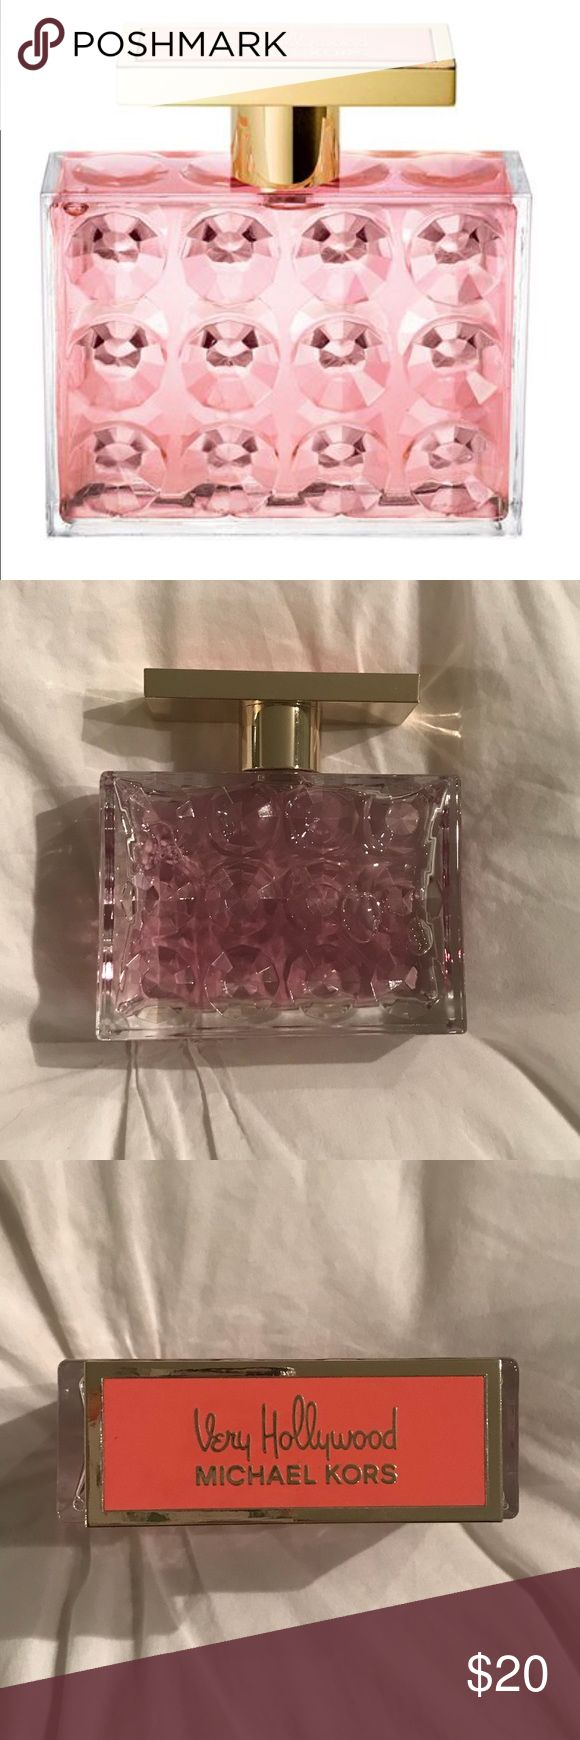 🆕 Michael Kors Very Hollywood Perfume 3.4 fl oz Brand new! Only sprayed once or twice to test. Michael Kors Very Hollywood perfume in the 3.4 fl oz bottle size. Beautiful bottle, looks great on a dresser.   Scent description: With a beautiful blend of mandarin, iced bergamot, soft white moss, wet jasmine, raspberry, gardenia, and creamy amber along with other floral, fruity, oriental and woody fragrances, the eau de parfum spray has an irresistible scent. Michael Kors Makeup